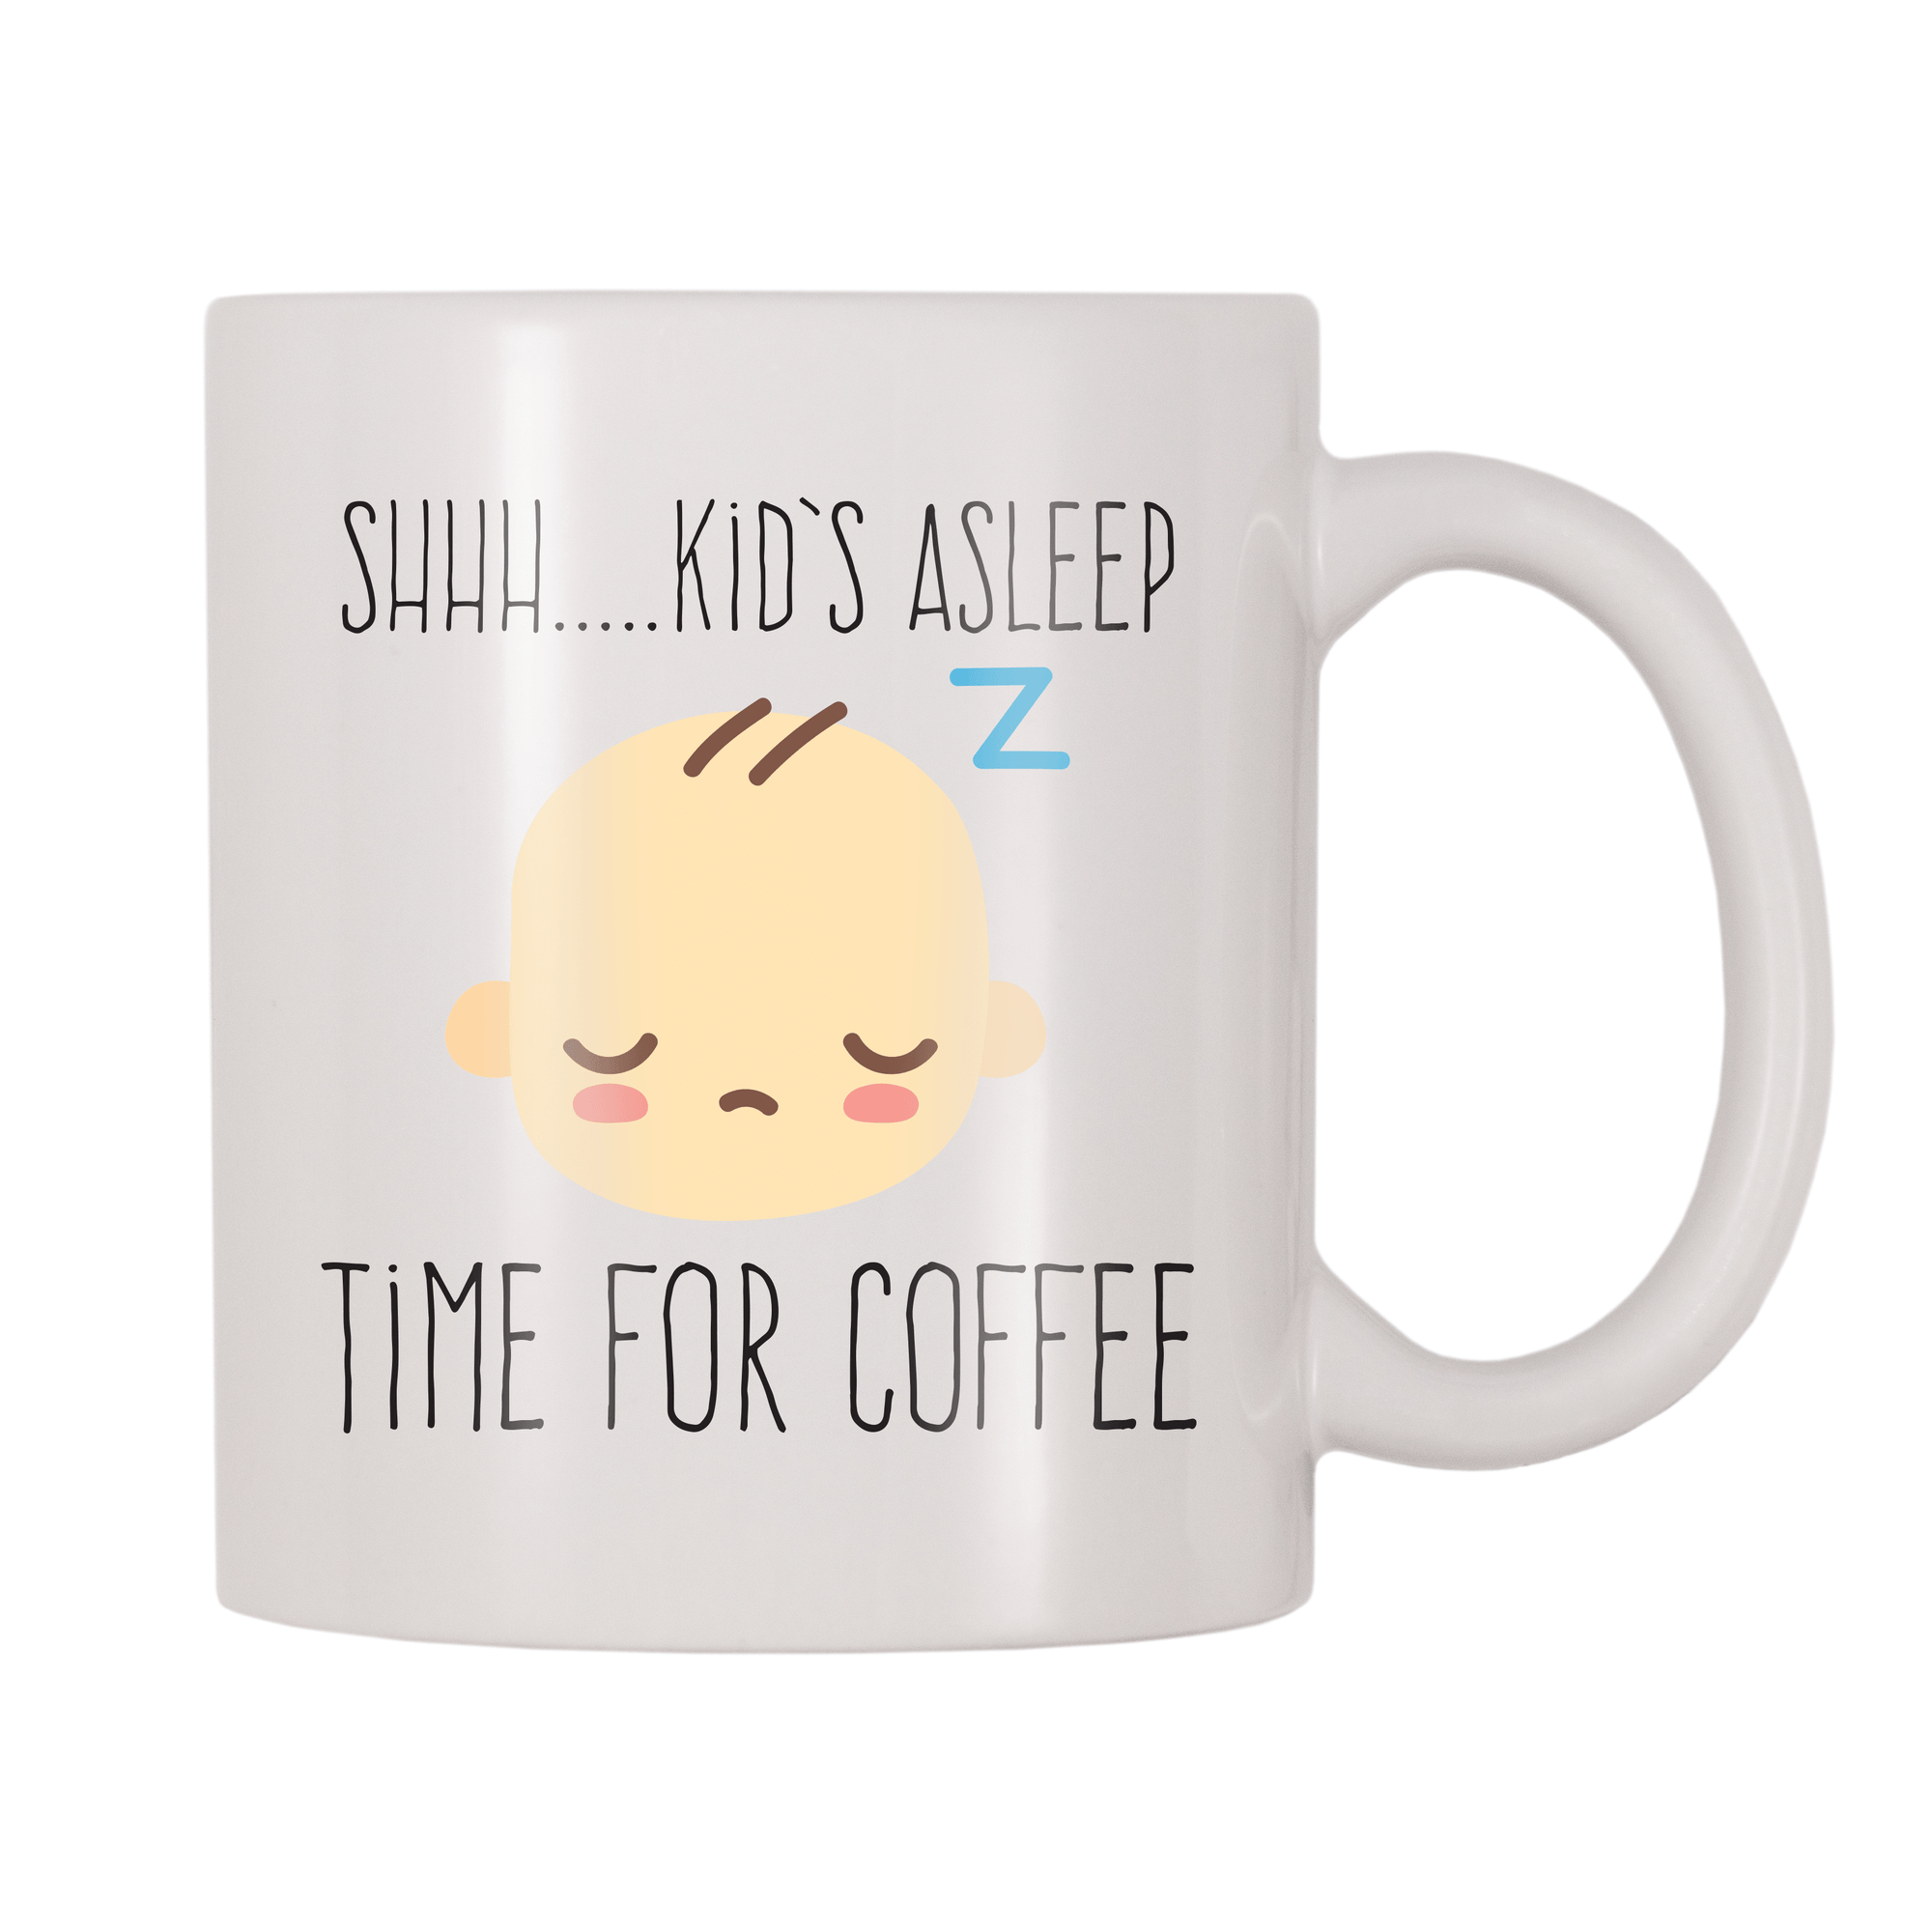 Shh Kid's Asleep Time For Coffee 11oz Coffee Mug